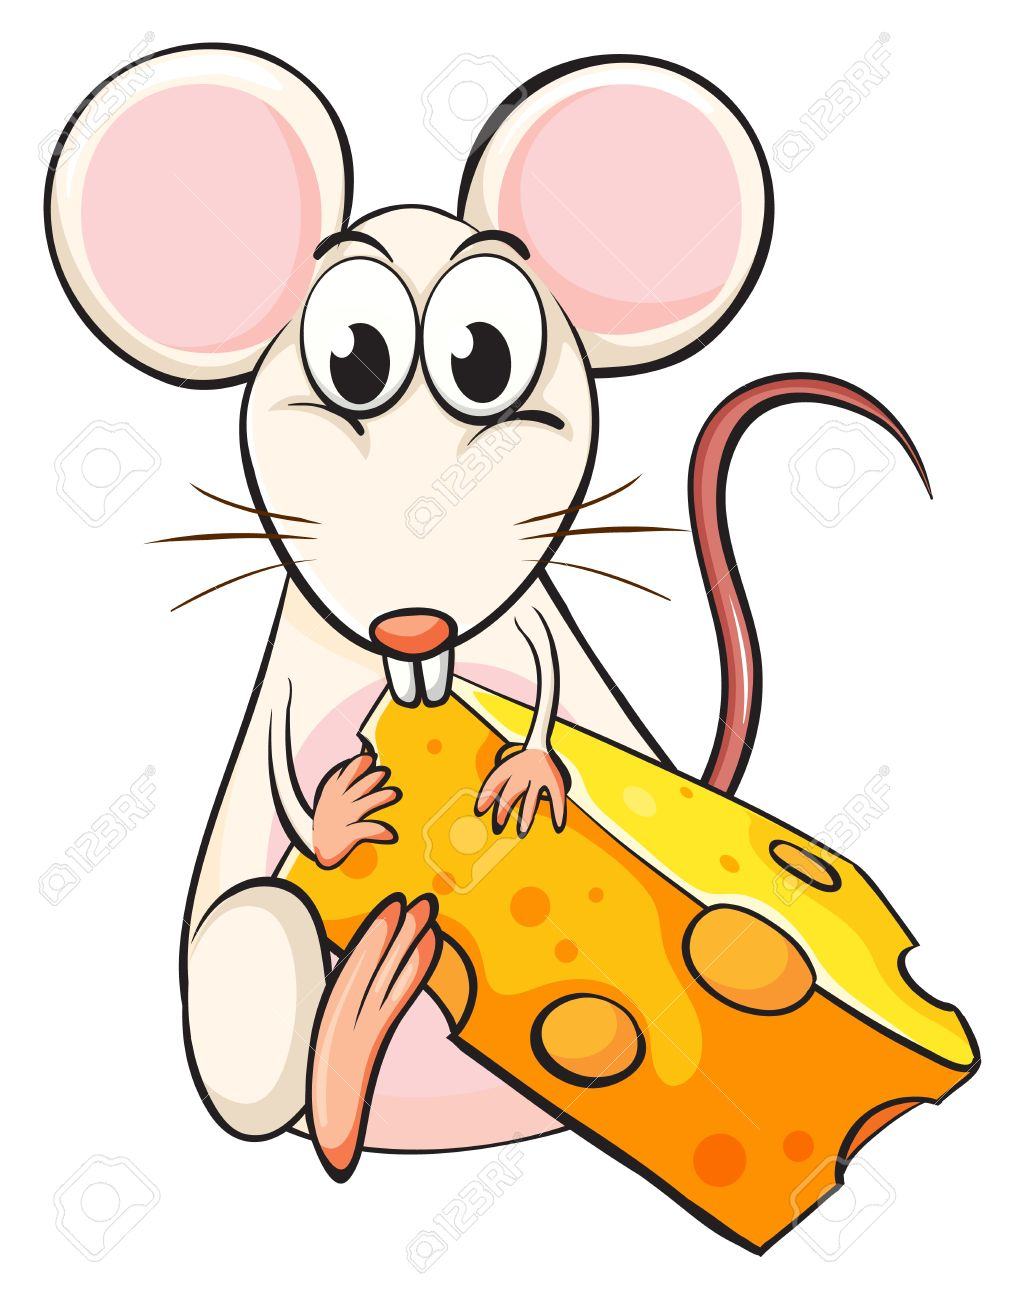 Illustration of a mouse and cheese on a white background Stock Vector - 16969728